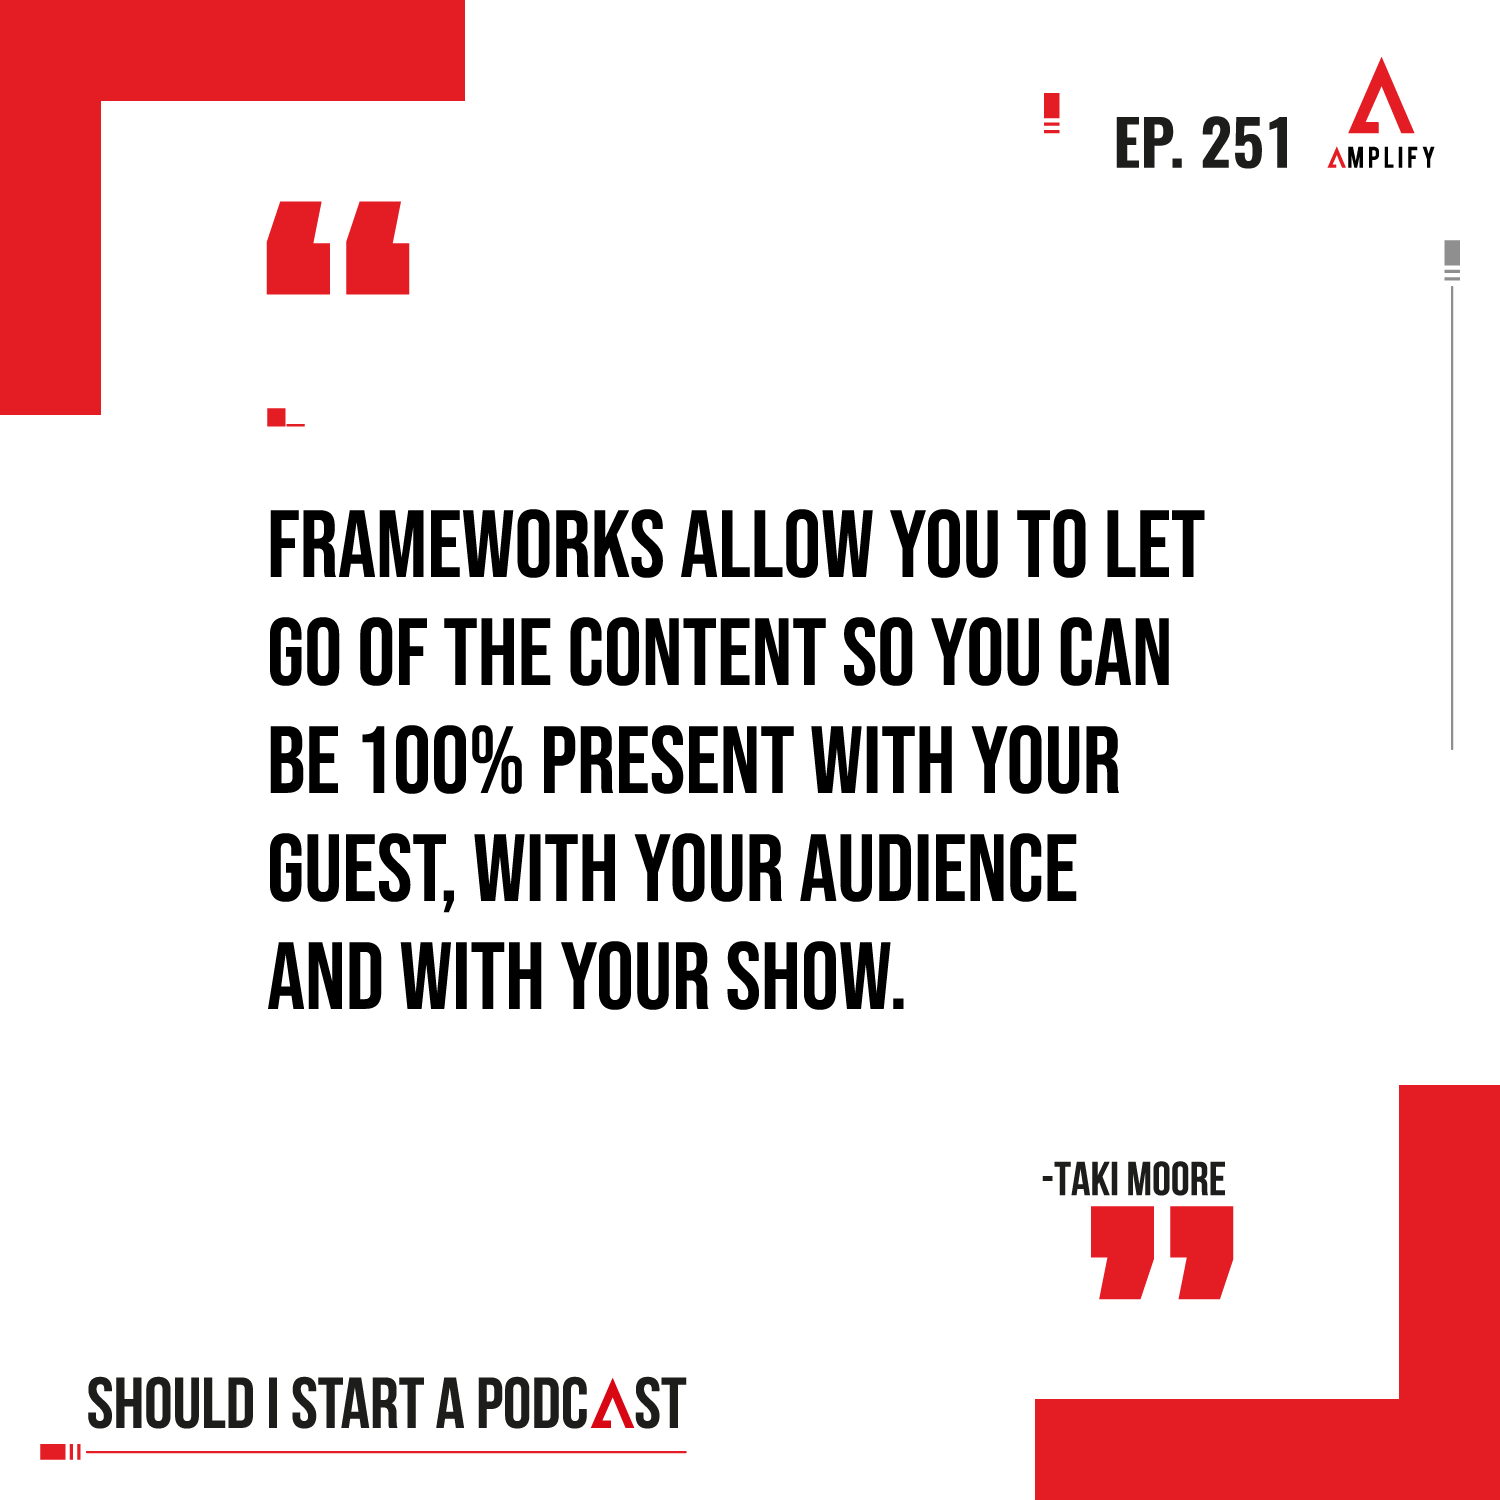 Quote:Frameworks allow you to let go of the content so you can be 100% present with your guest, with your audience and with your show.